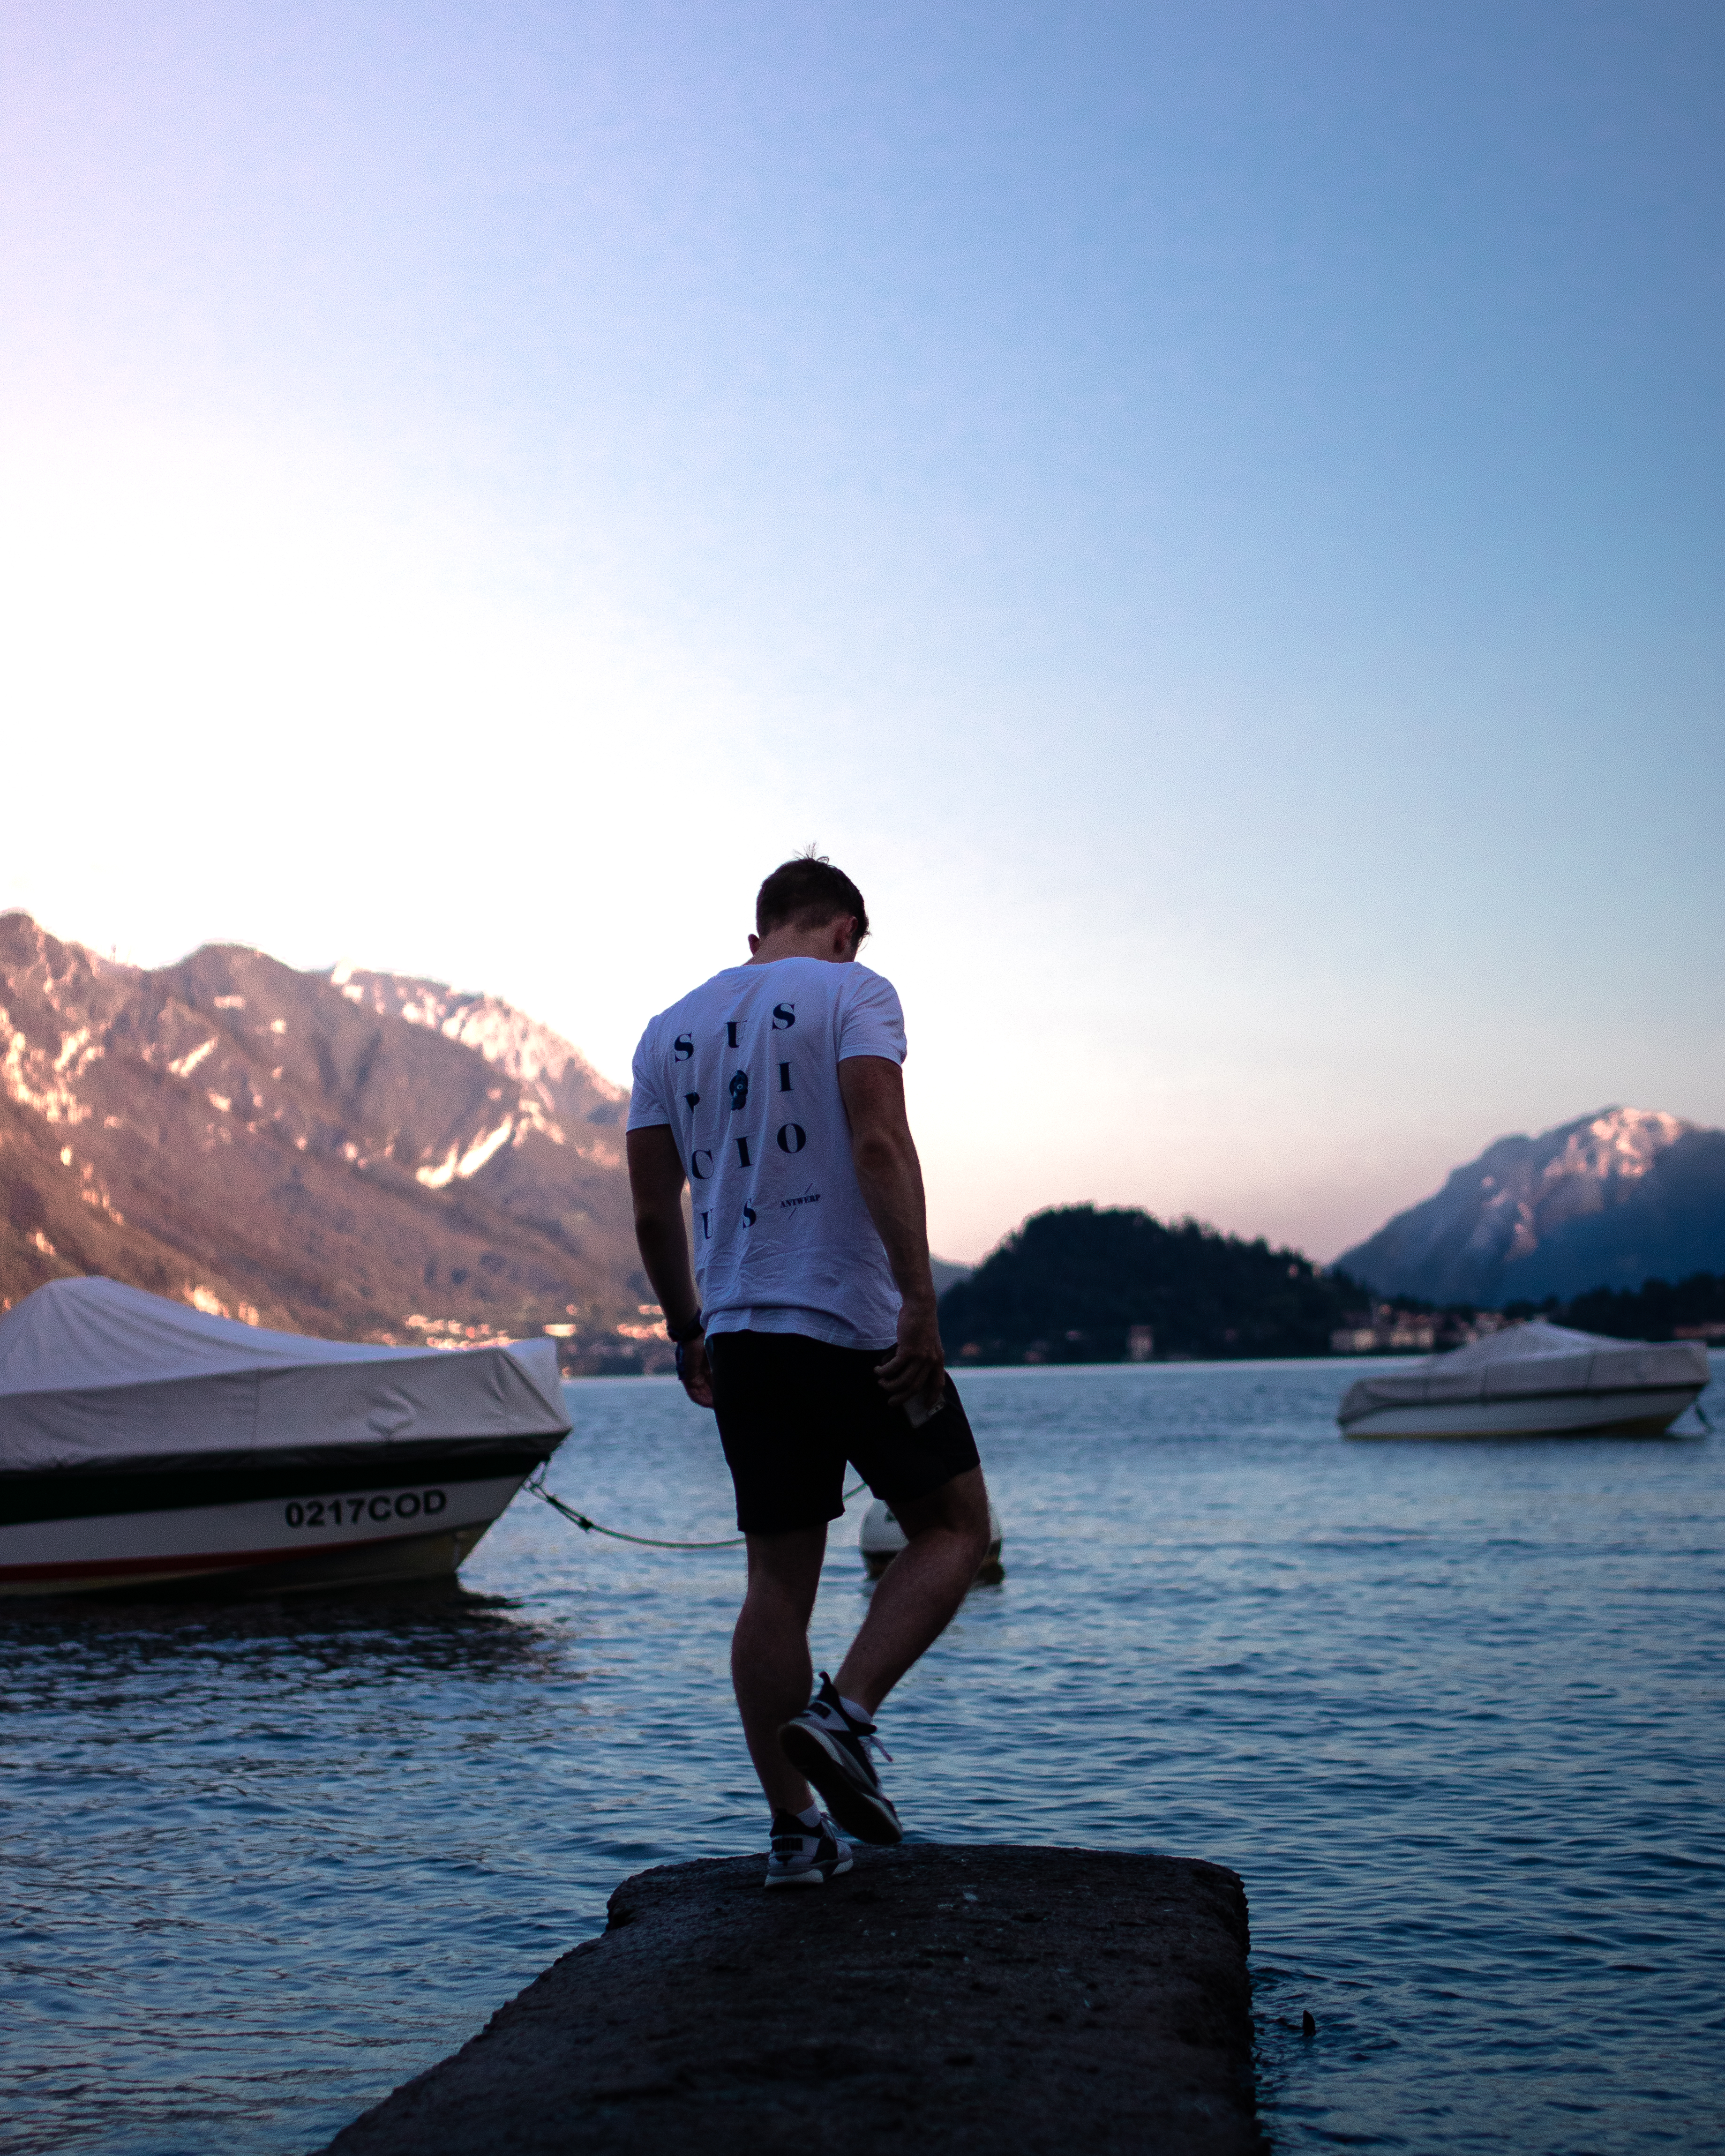 Man standing towards the lake with background of mountains water and boats